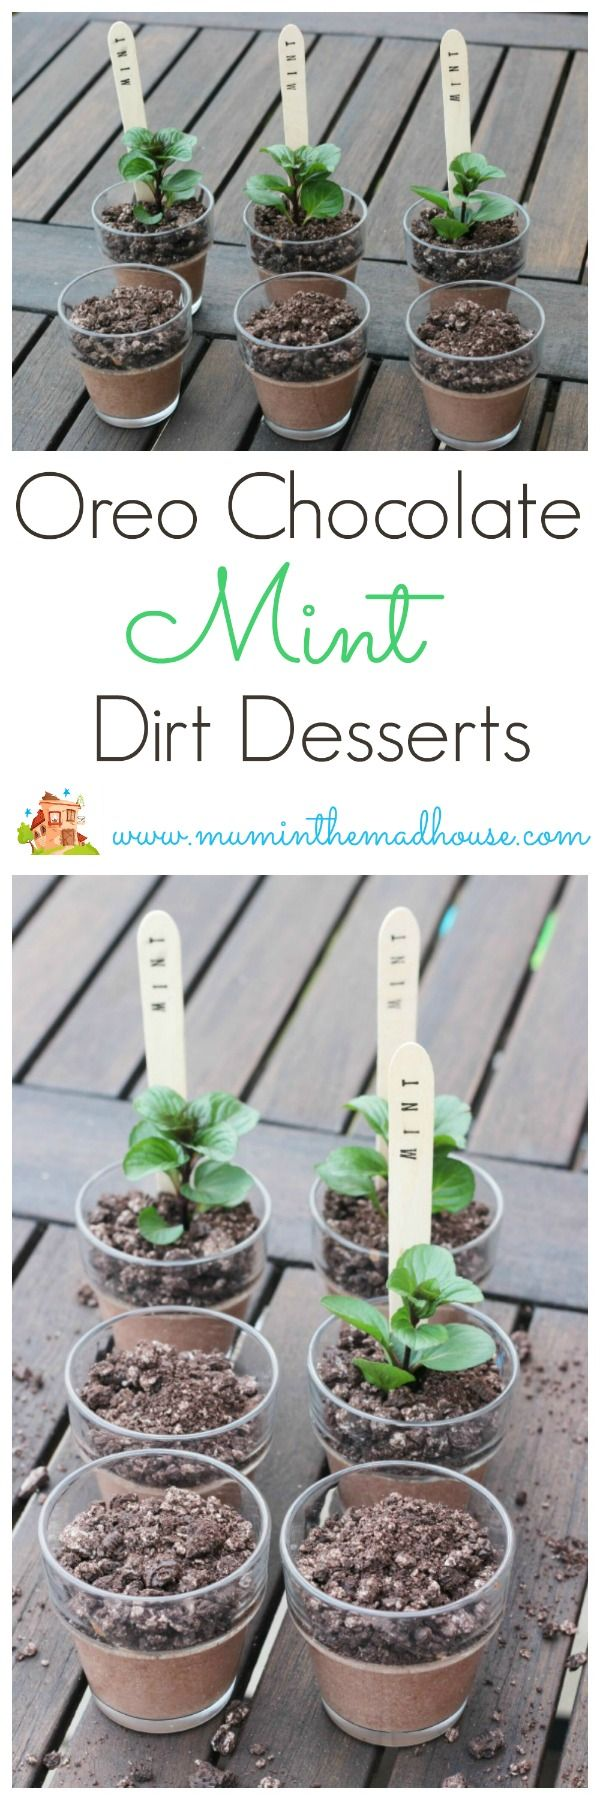 Oreo mint chocolate dessert plant posts.  These fun pudding pots are a great…